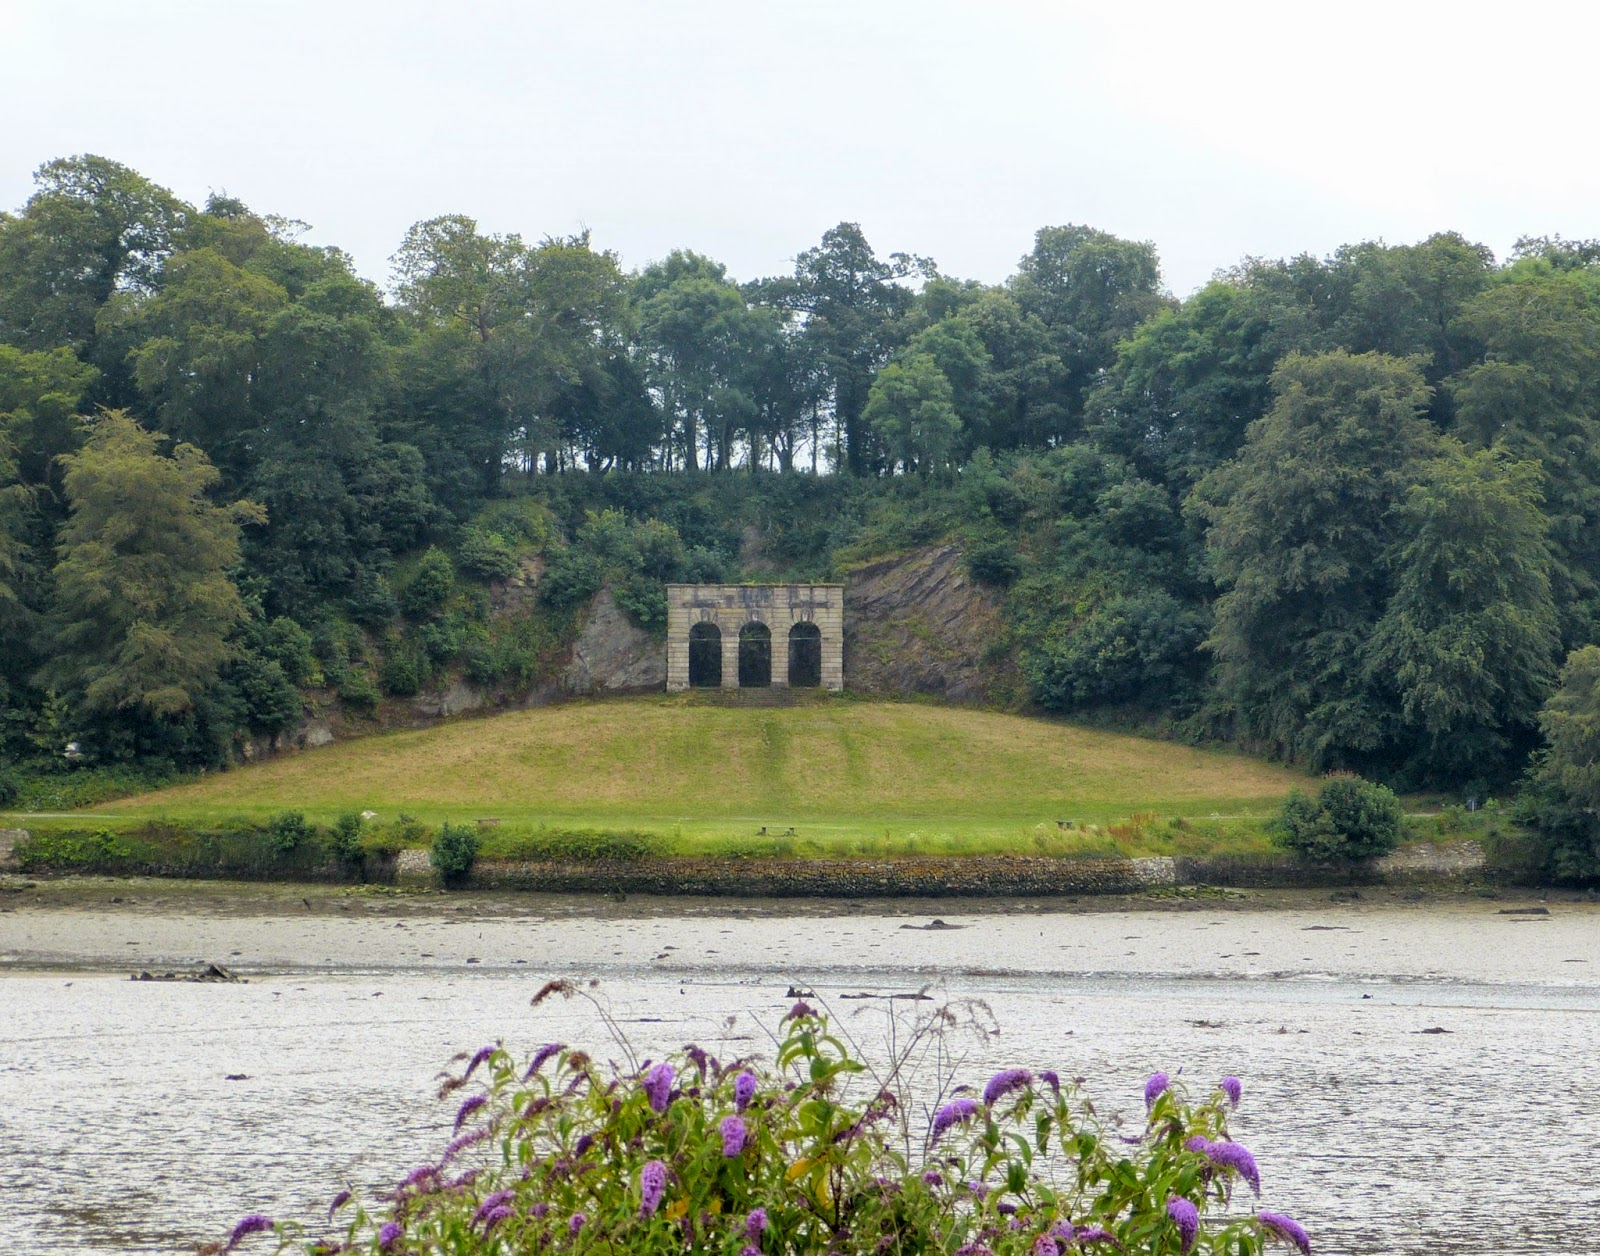 The Amphitheatre, Saltram, from across the river